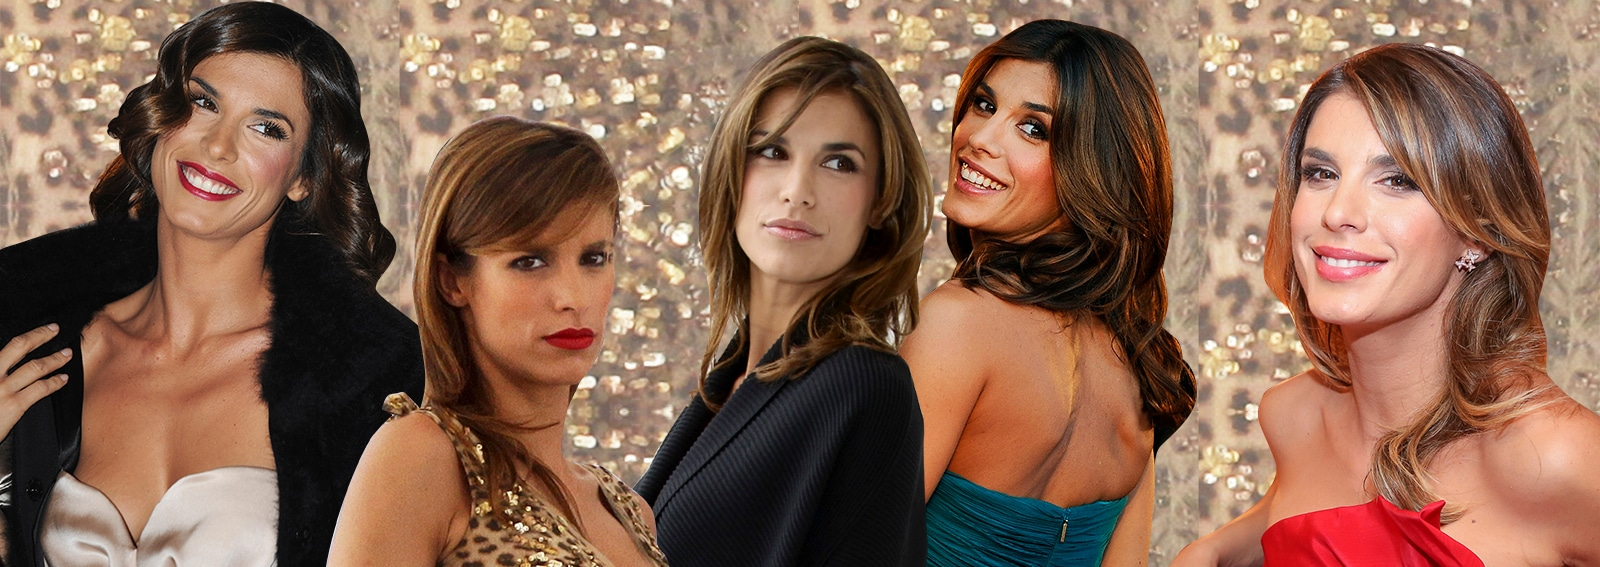 elisabetta-canalis-make-up-collage-desktop